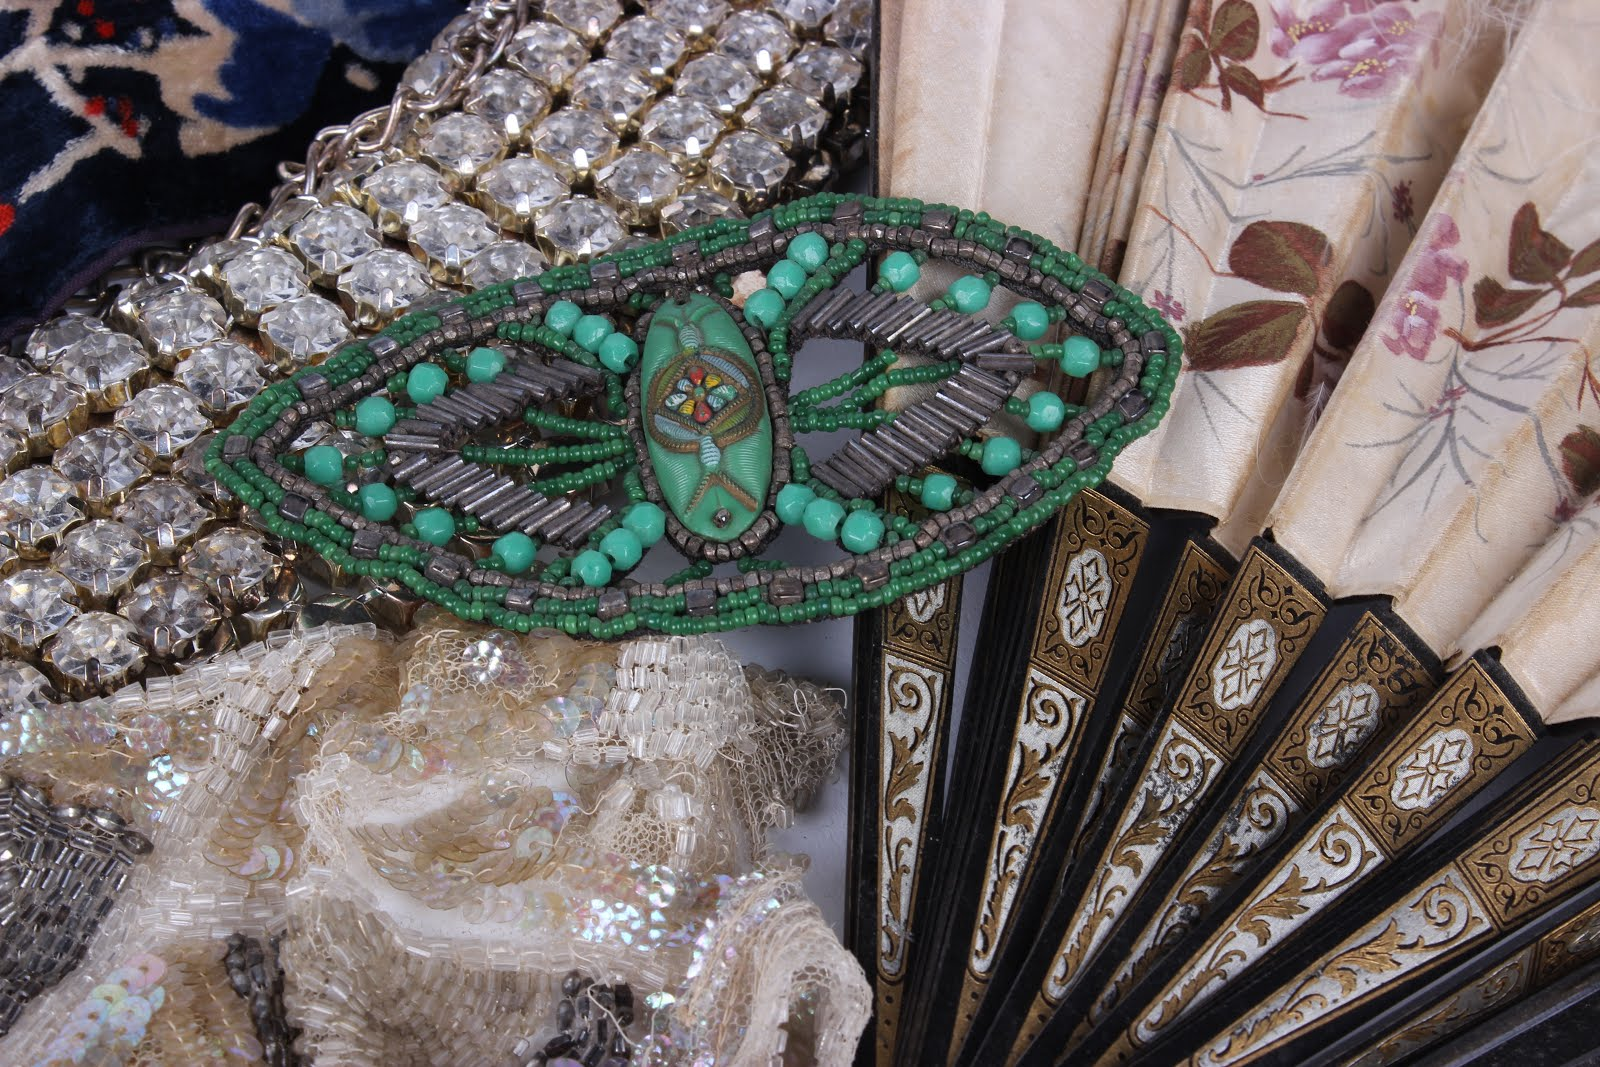 Bristol Auction Rooms Antiques, Collectors, Antique Textiles and Vintage Fashion Auction